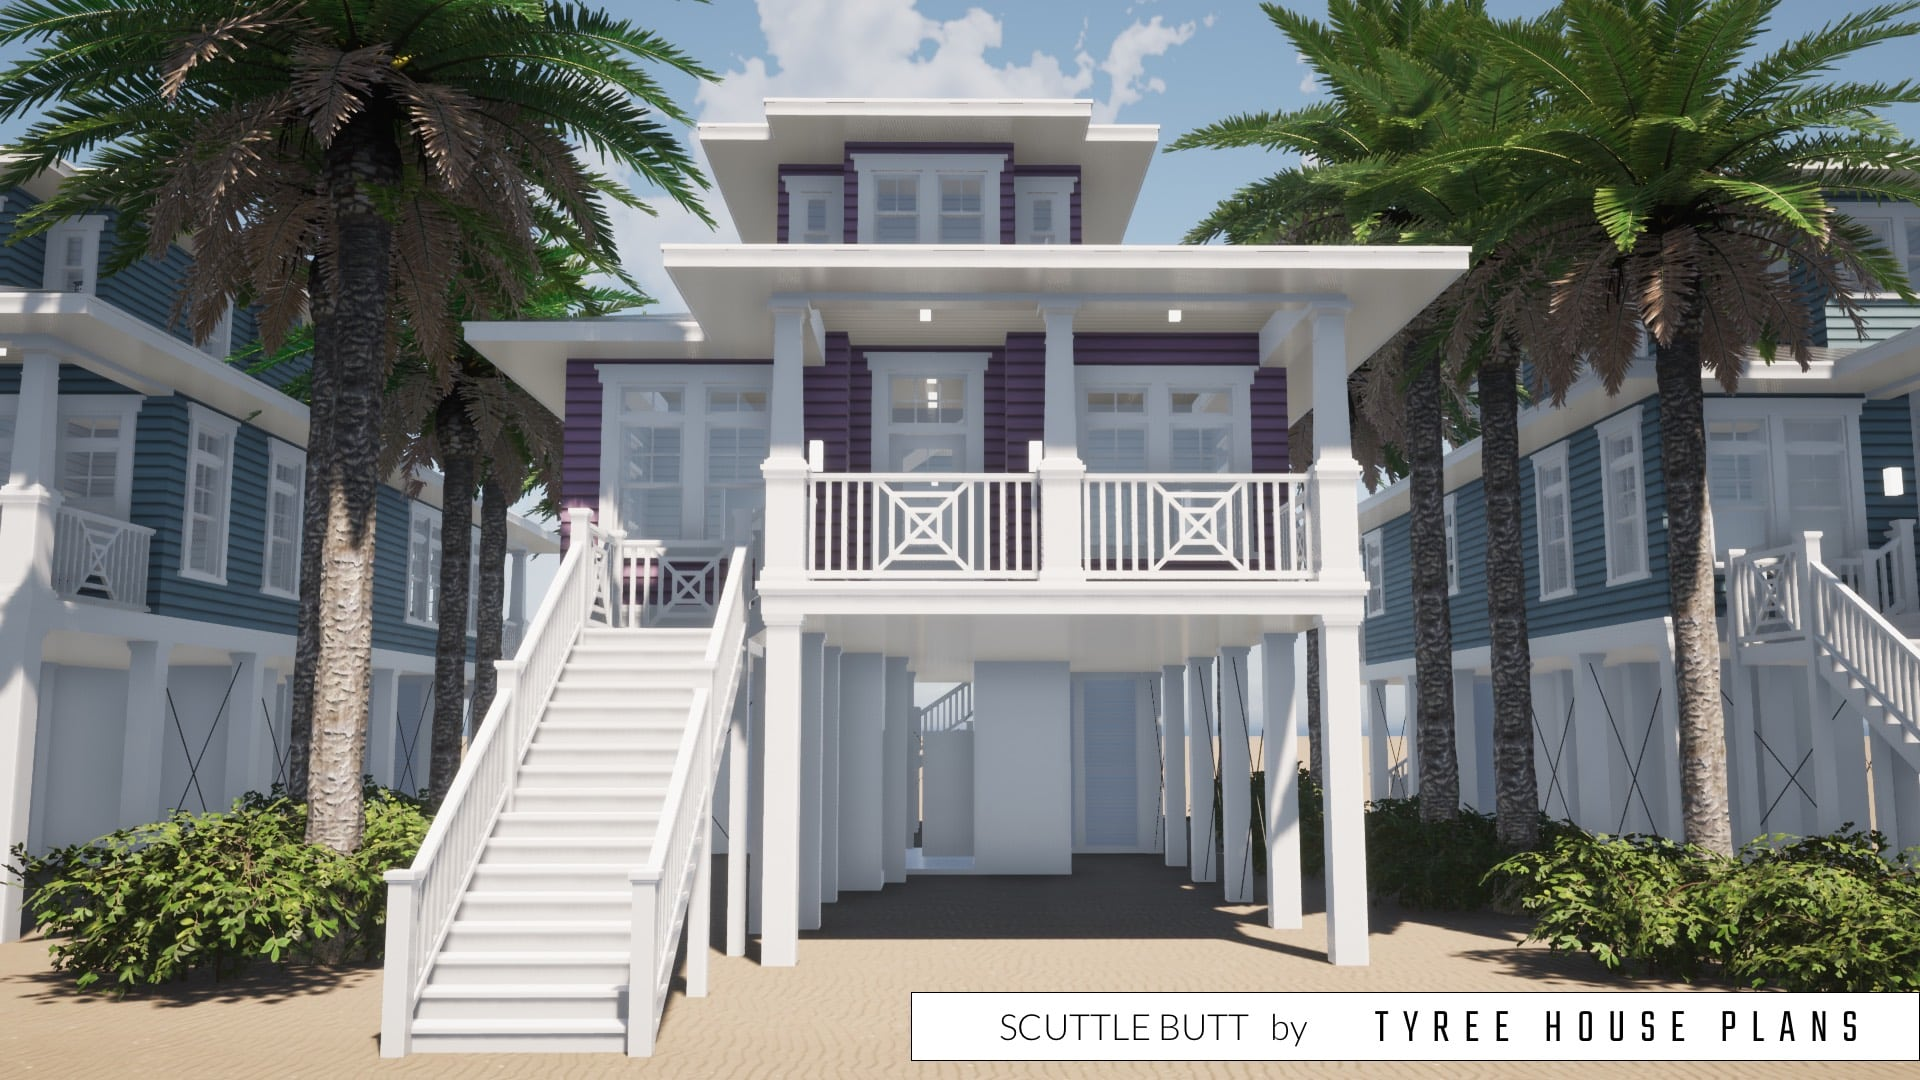 Scuttle Butt House Plan by Tyree House Plans